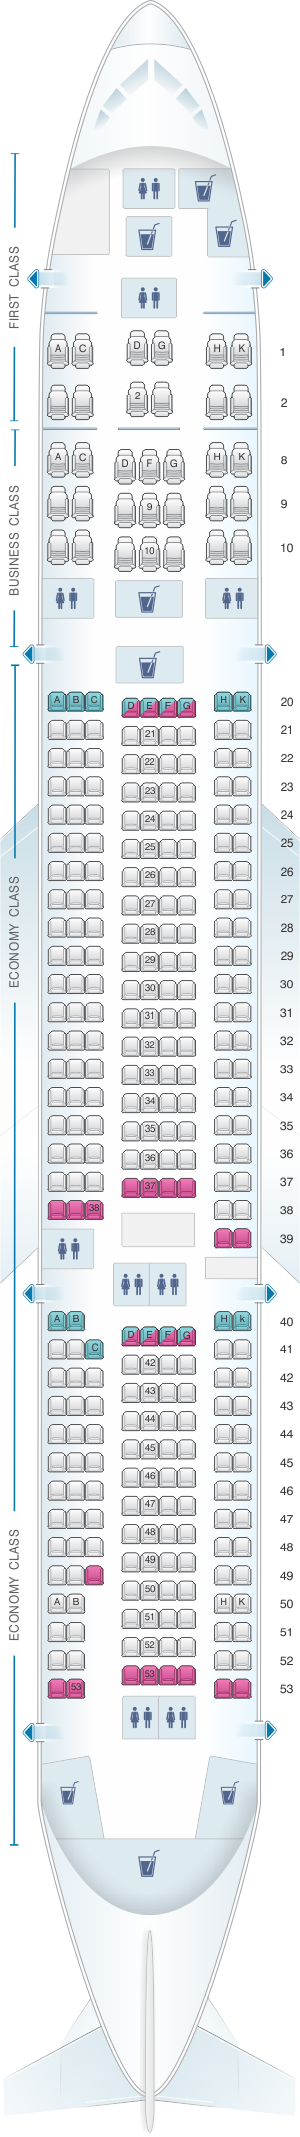 Seat map for Egyptair Boeing B777 200